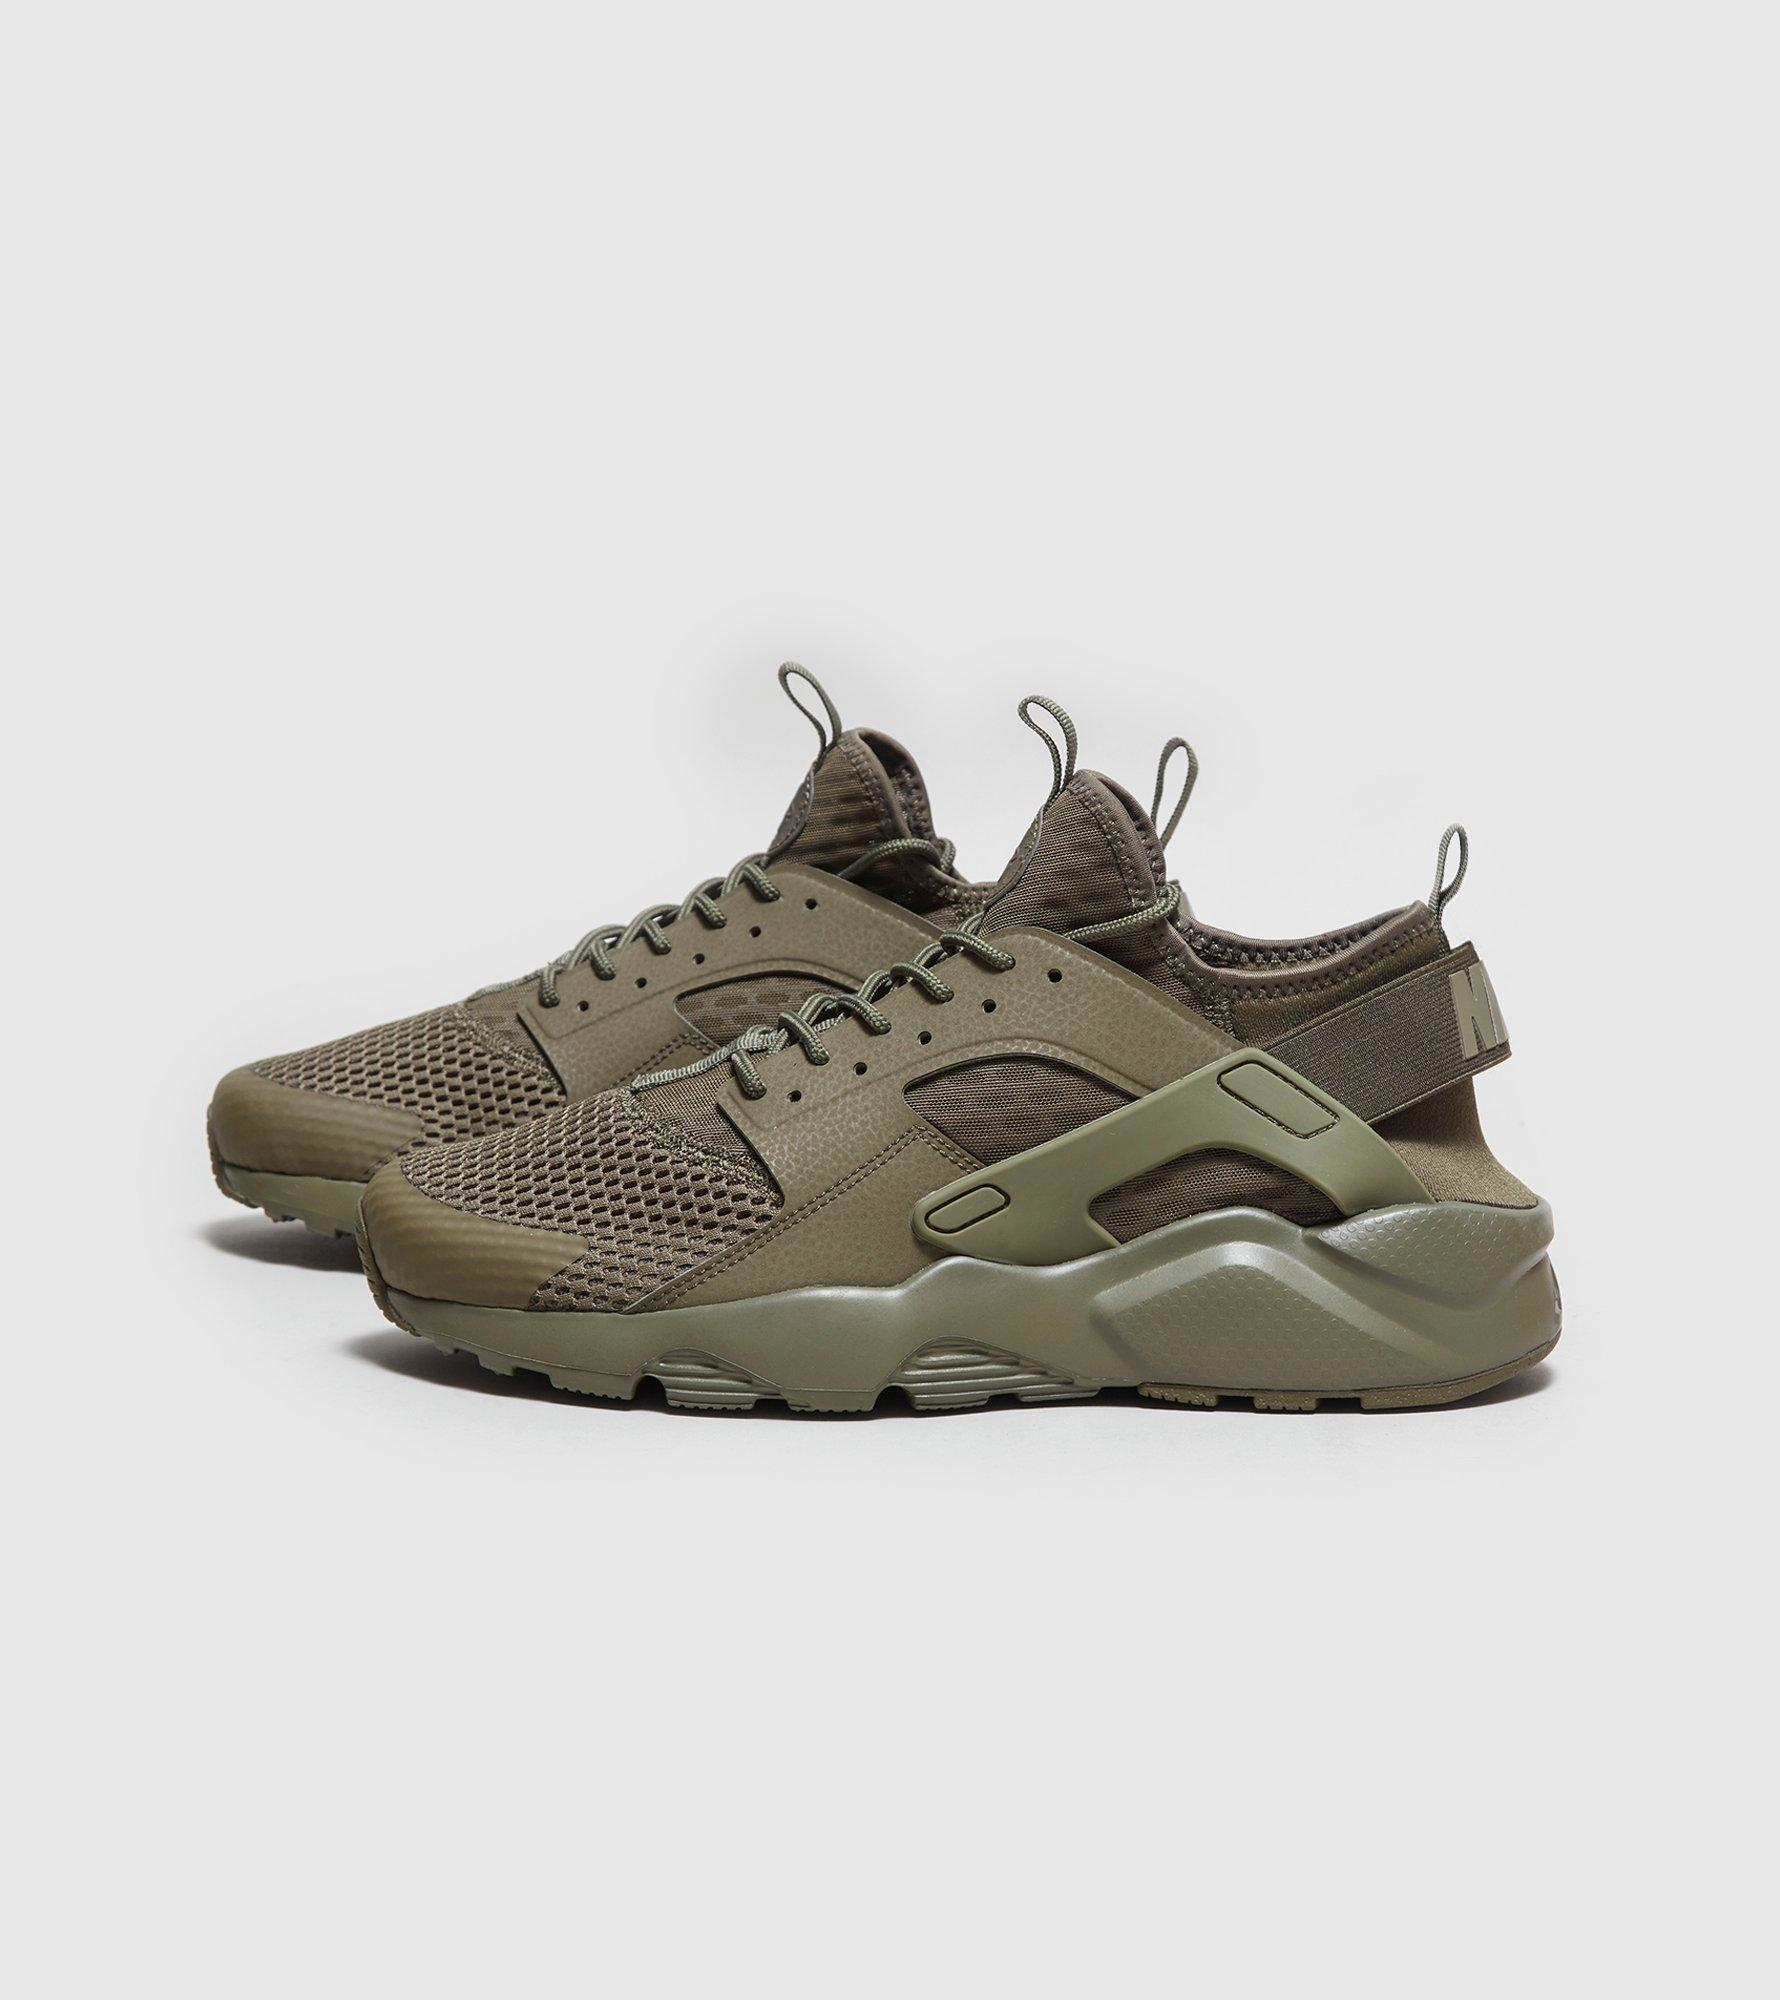 Nike Huarache Ultra Breathe Khaki